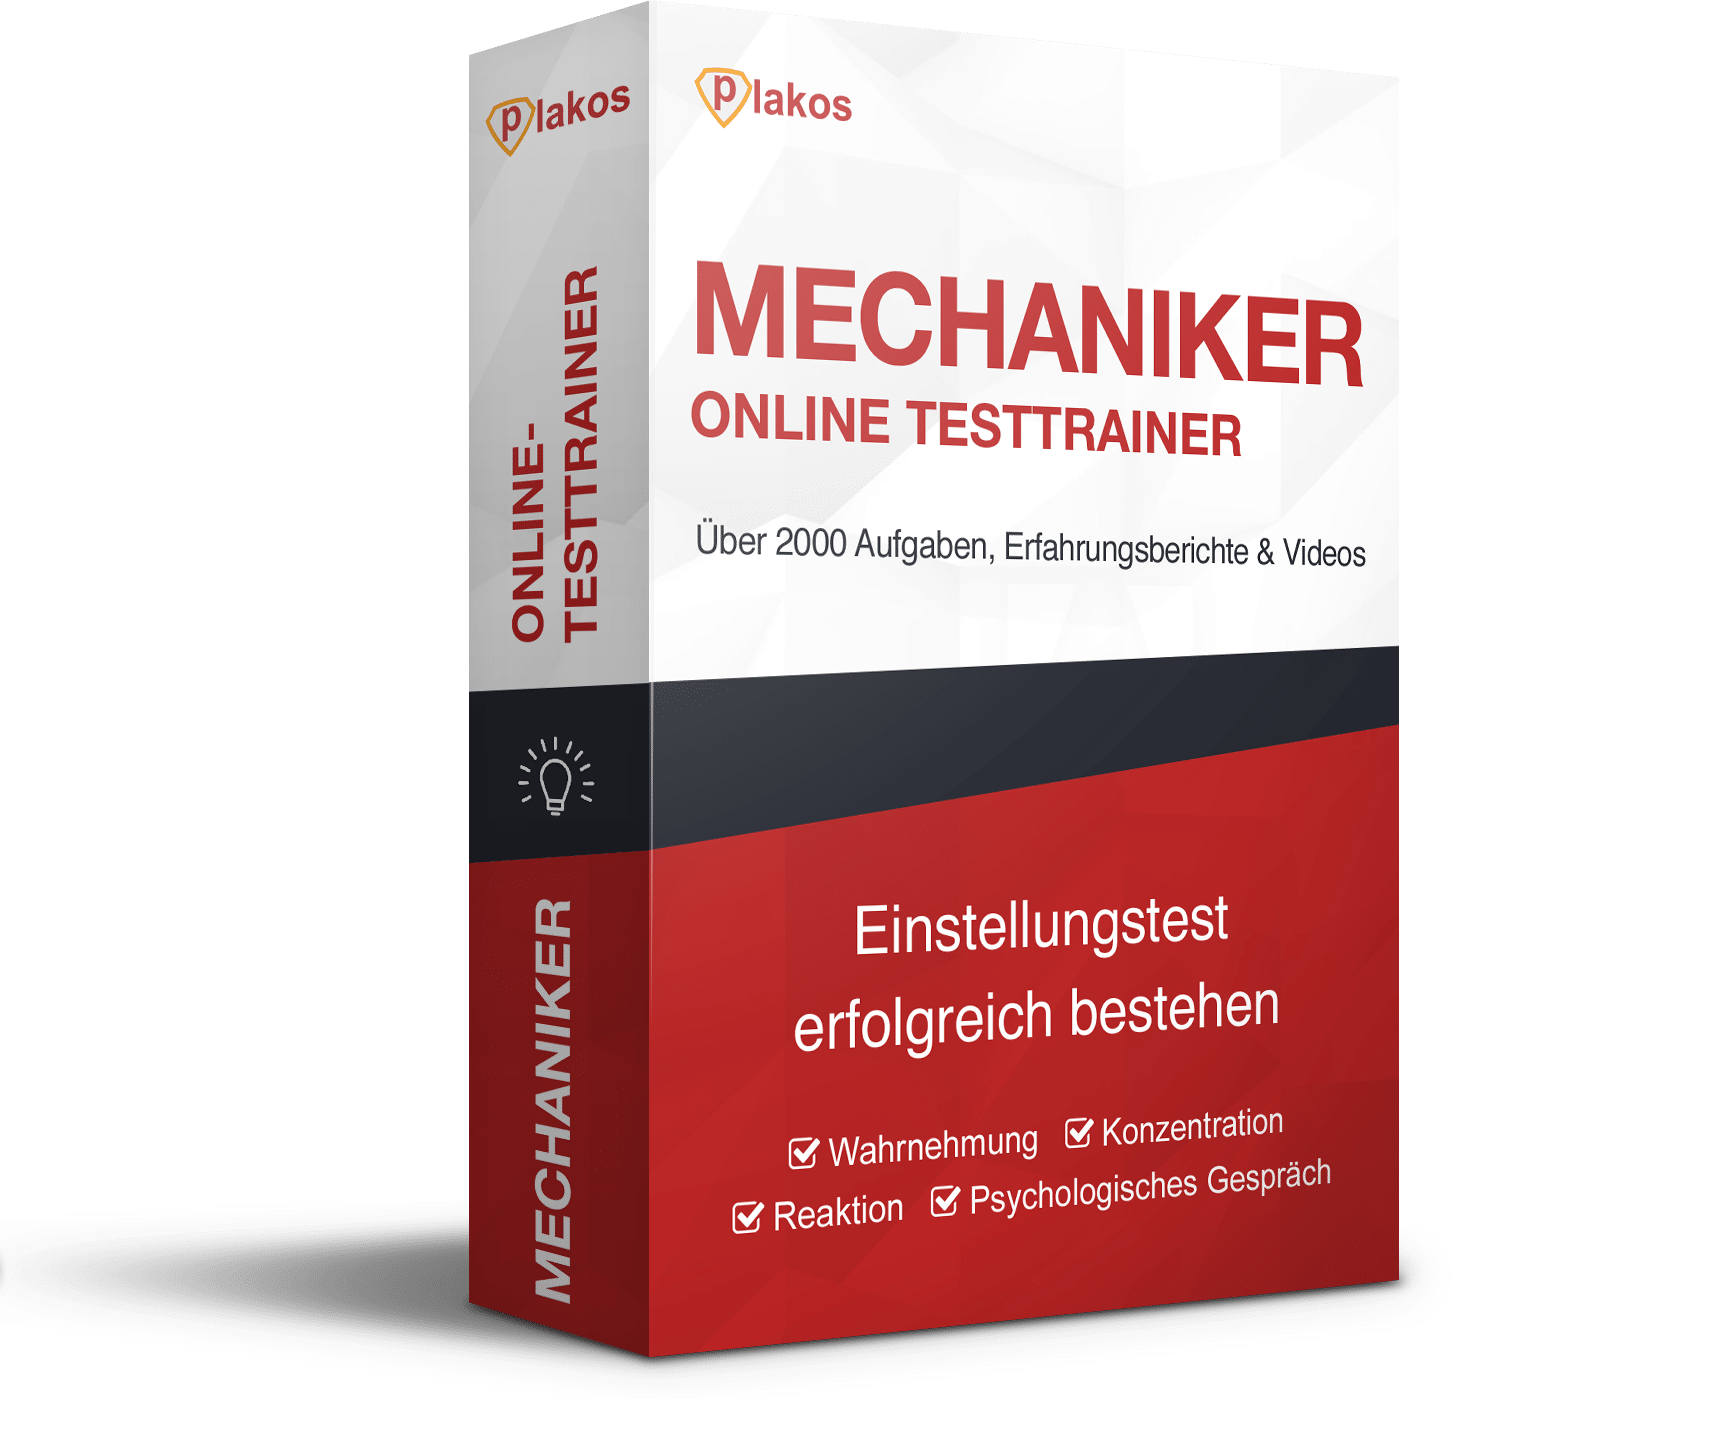 Mechaniker/in Online Testtrainer